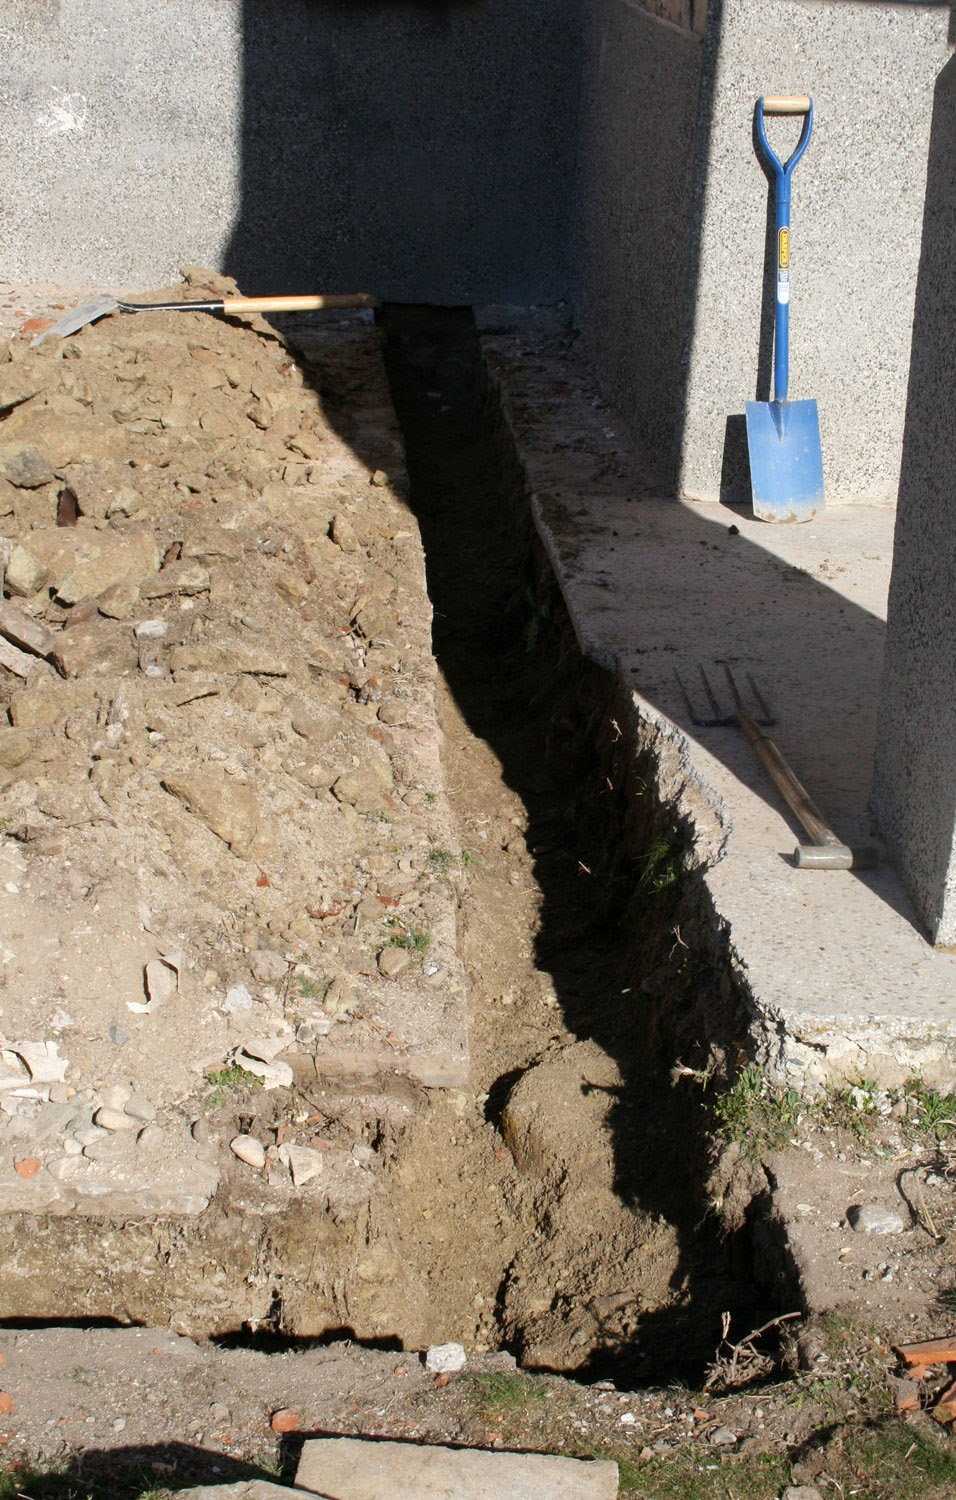 Continuing the trench to the wall